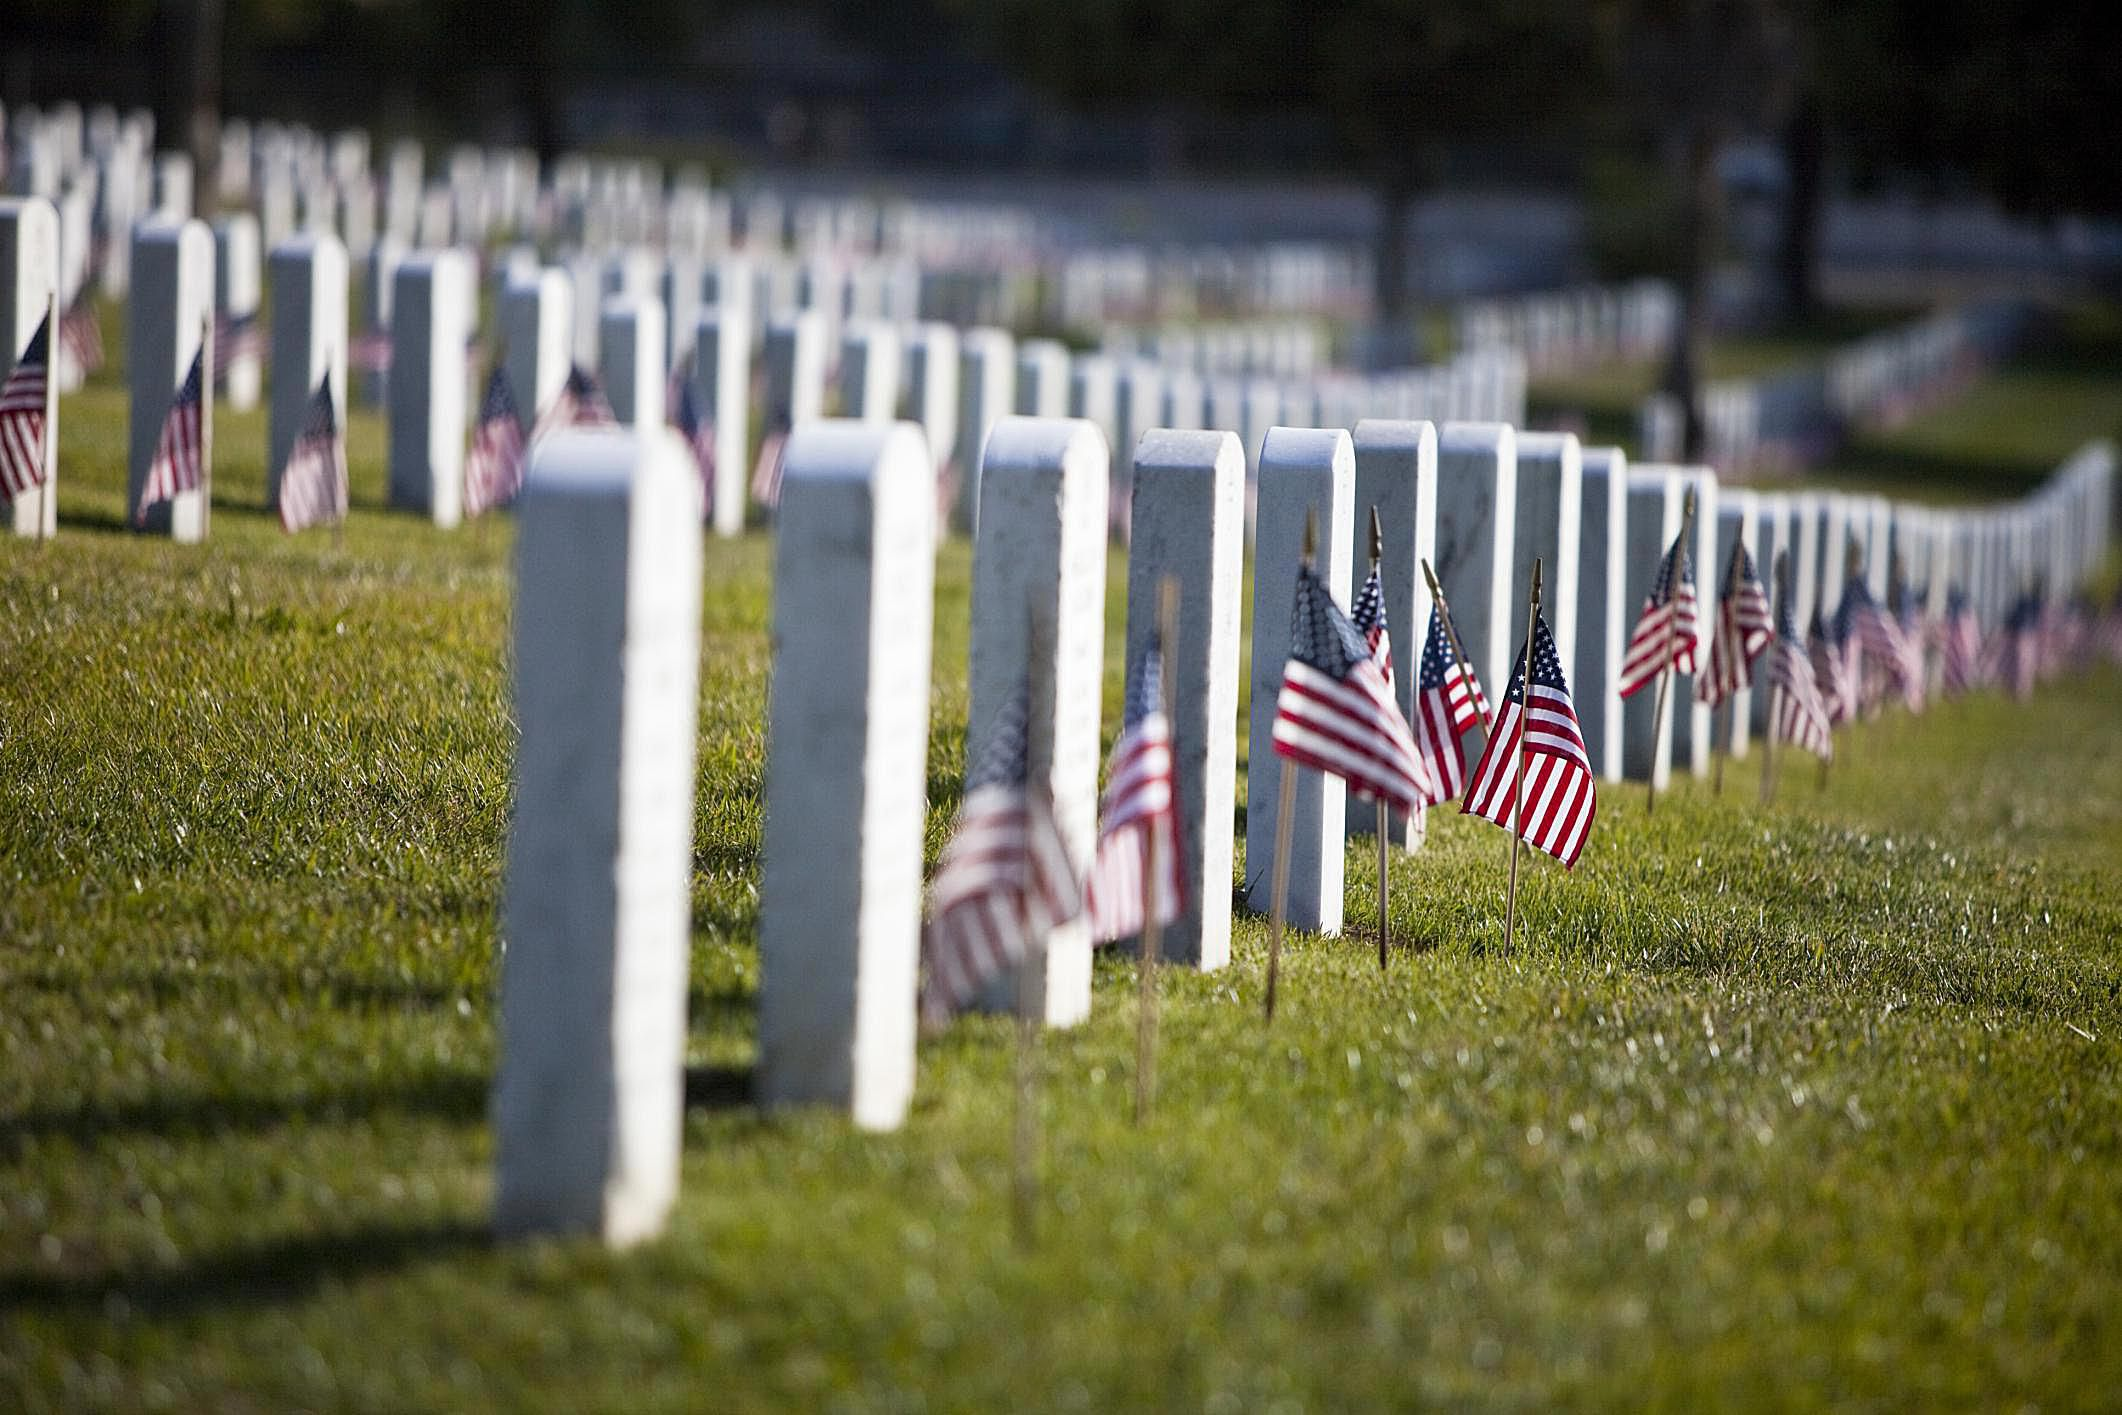 Military Abbreviations Found on U.S. Grave Markers